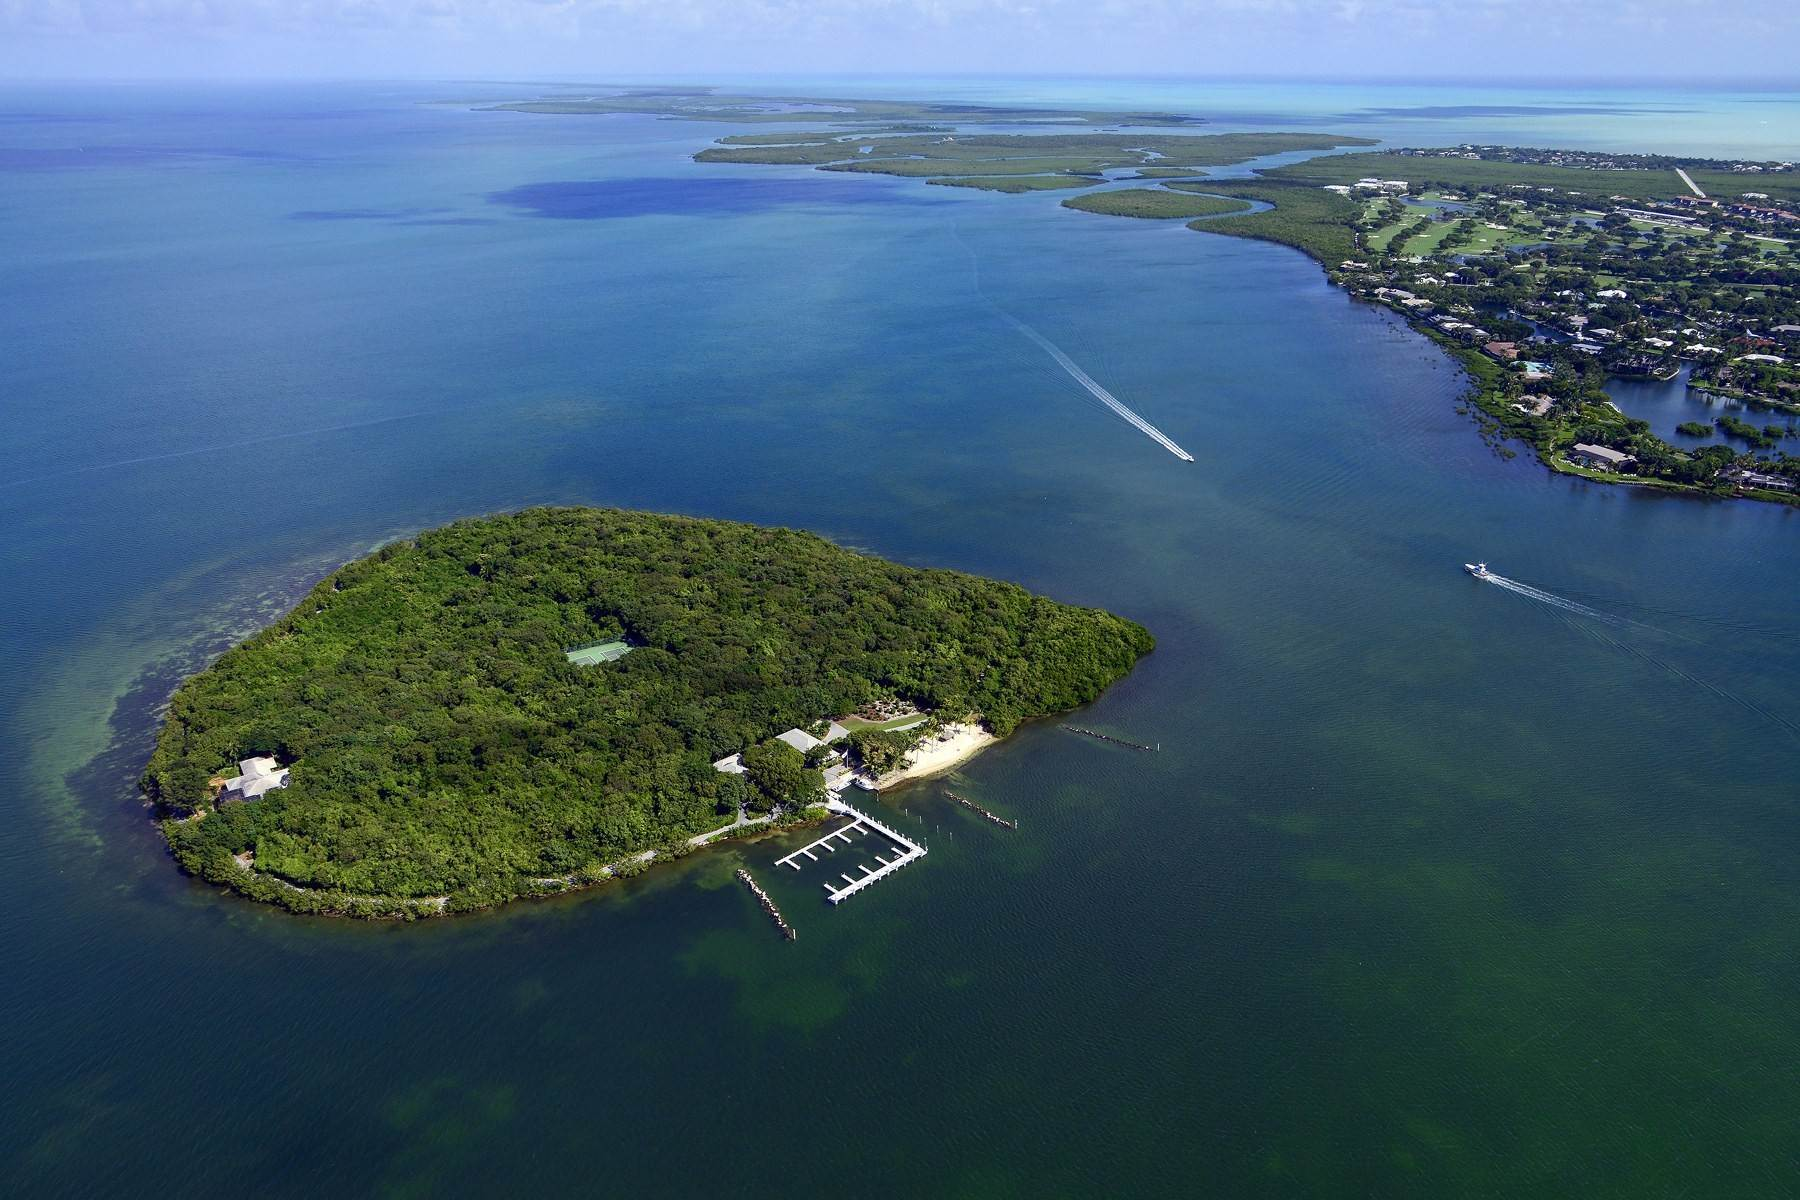 Property 为 销售 在 Pumpkin Key - Private Island, Key Largo, FL Pumpkin Key - Private Island 拉哥, 佛罗里达州 33037 美国